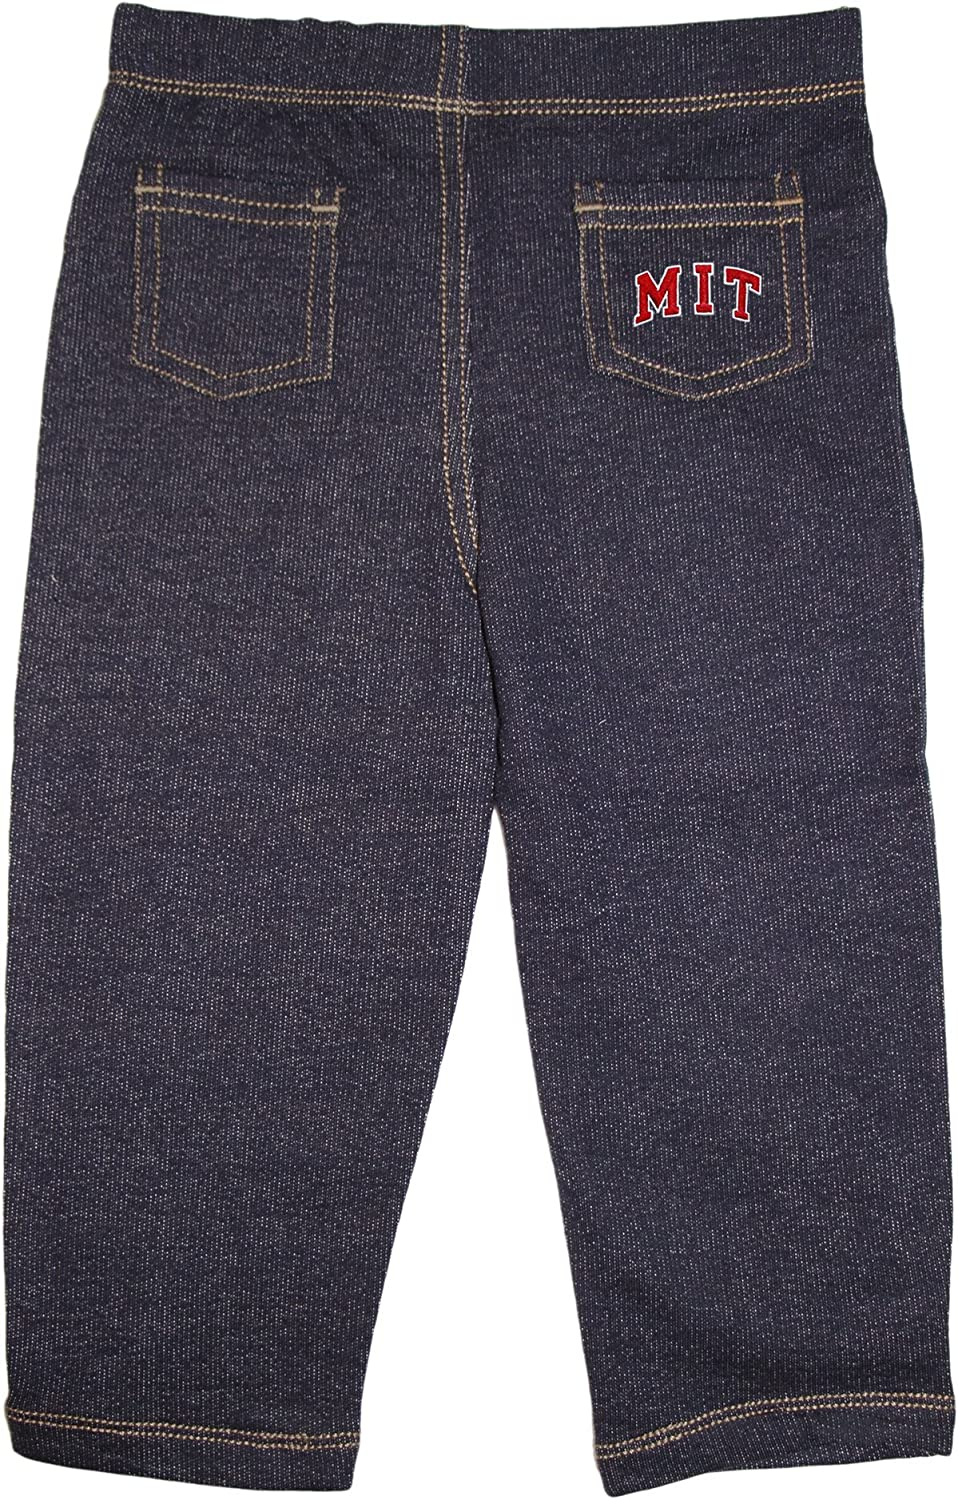 Creative Knitwear Massachusetts Institute of Technology Arched MIT Denim Jeans